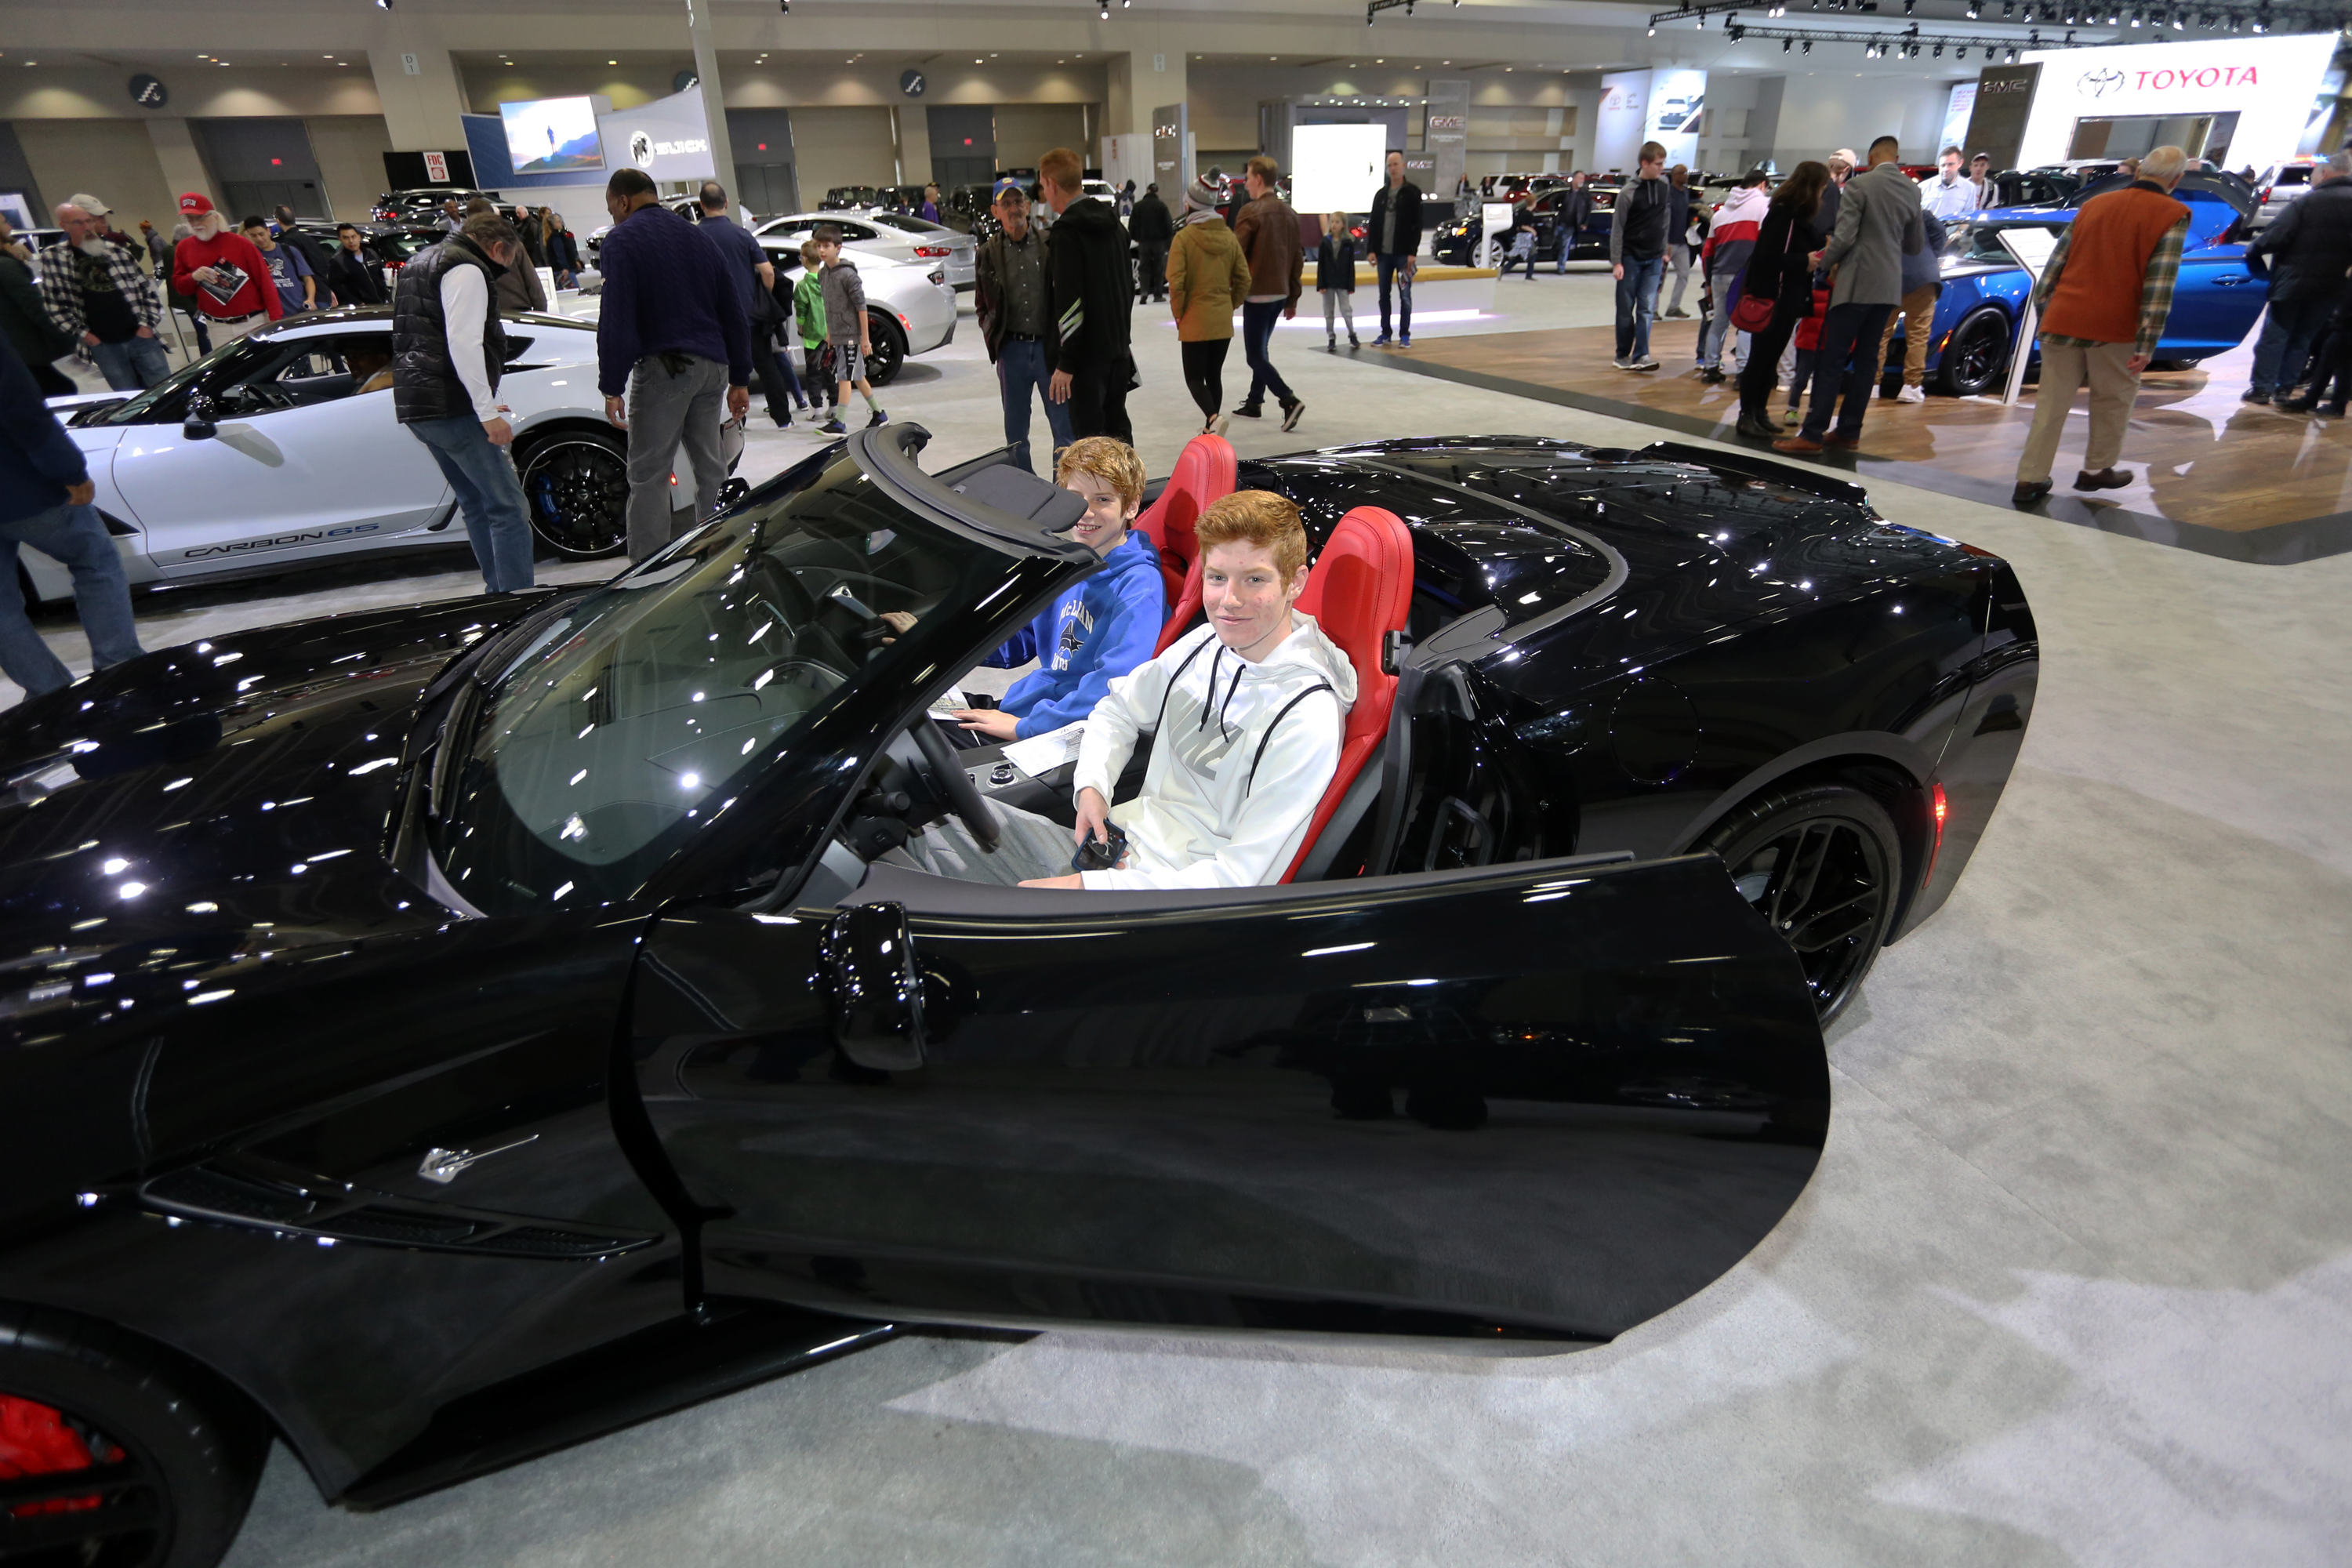 Photo Galleries Washington Auto Show - Washington car show